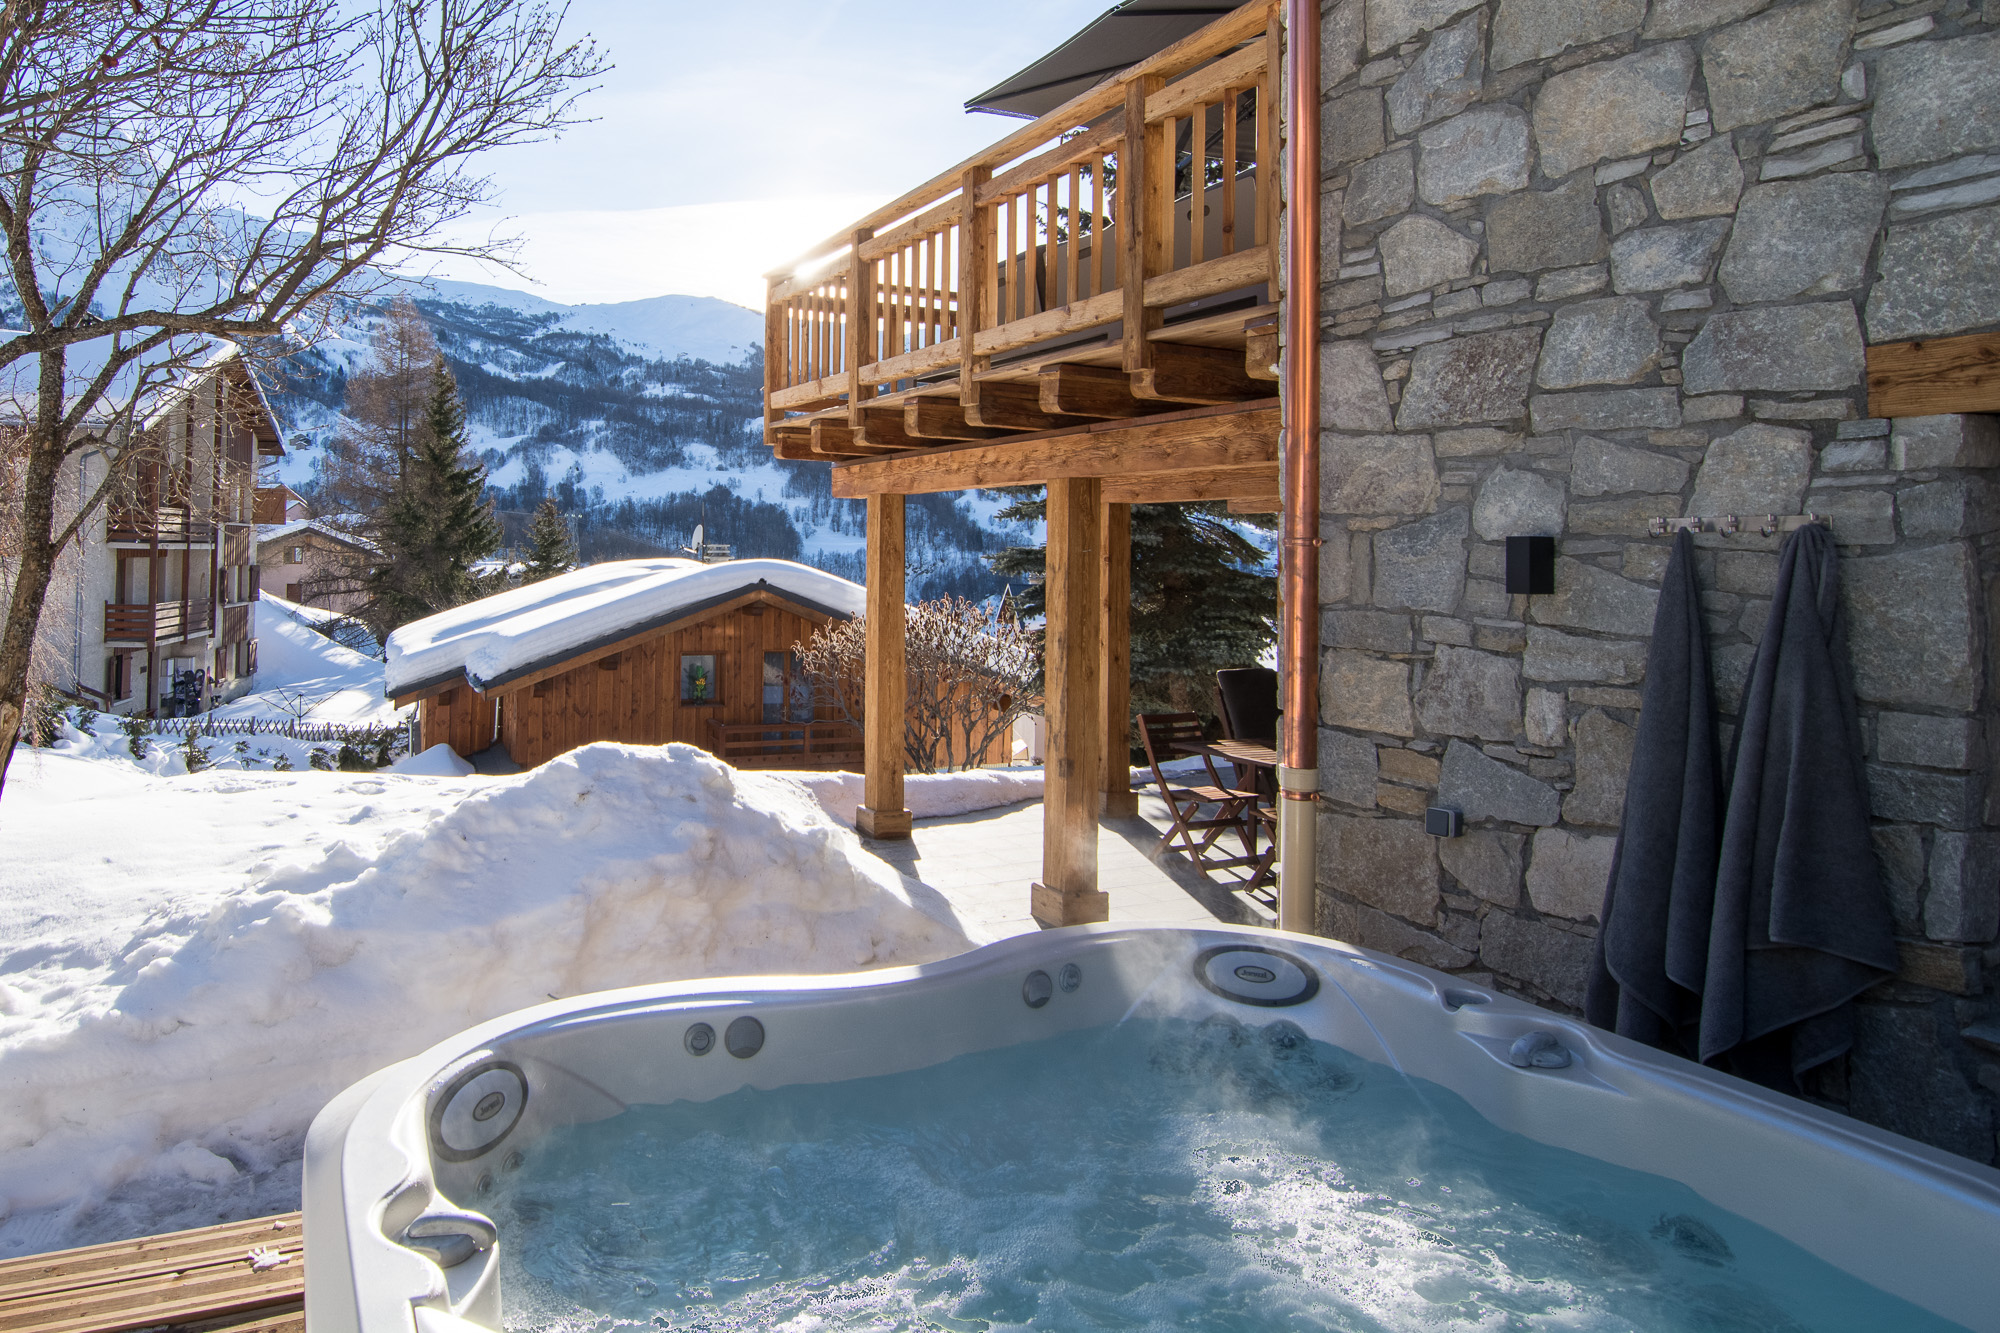 Luxury ski chalet with outdoor hot tub, 3 Valleys